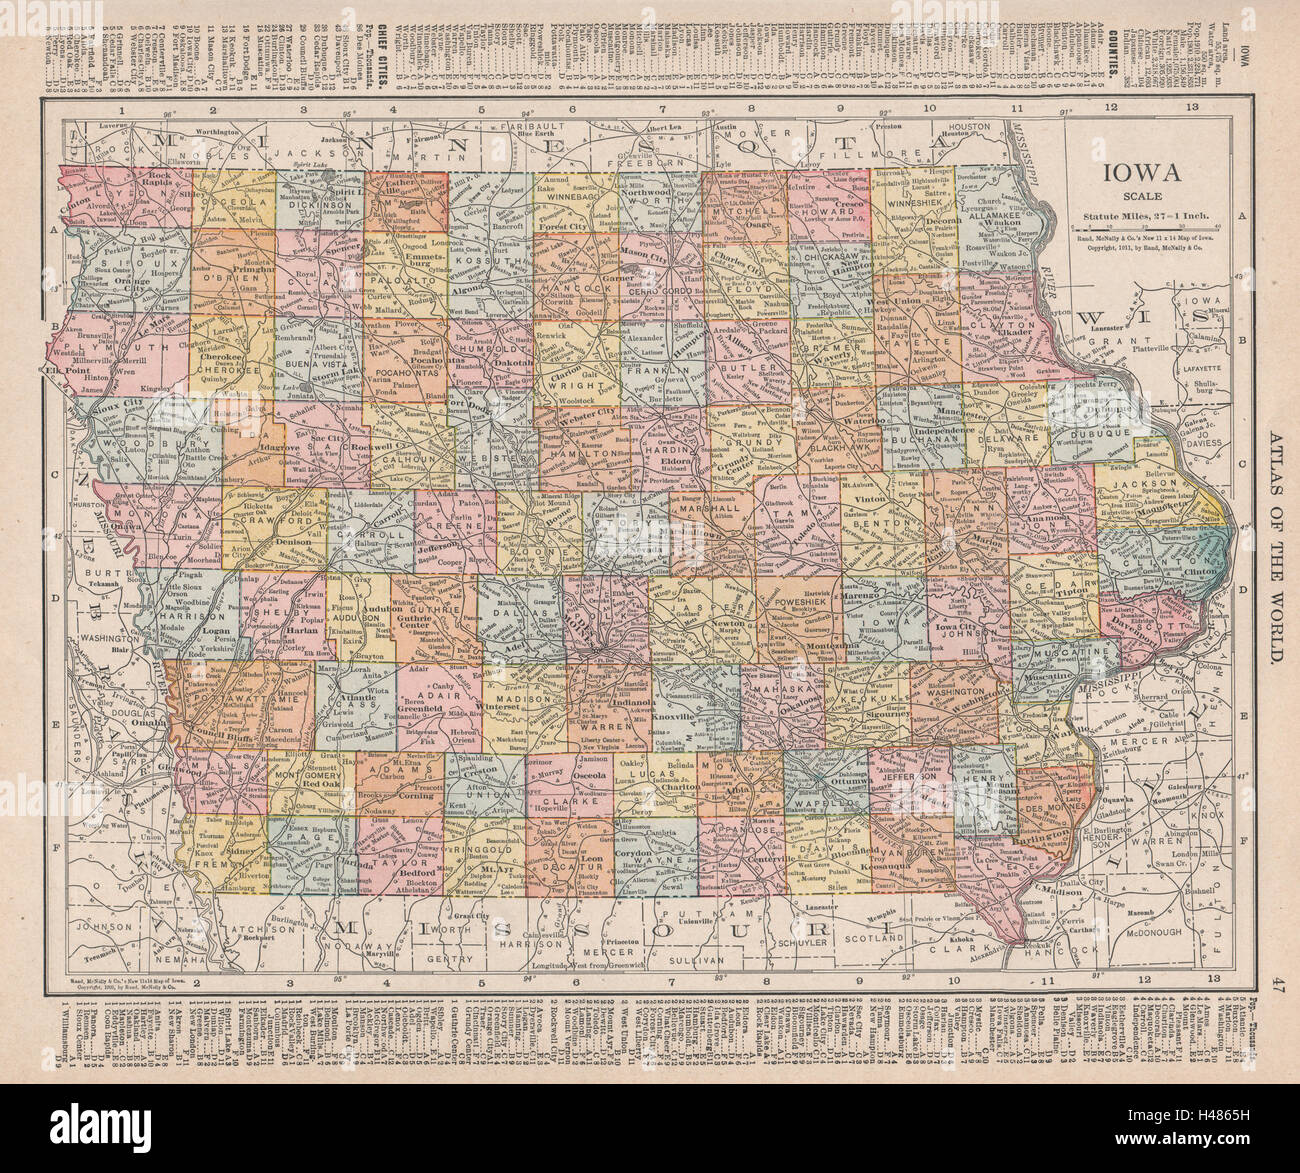 Iowa State Map Stock Photos & Iowa State Map Stock Images